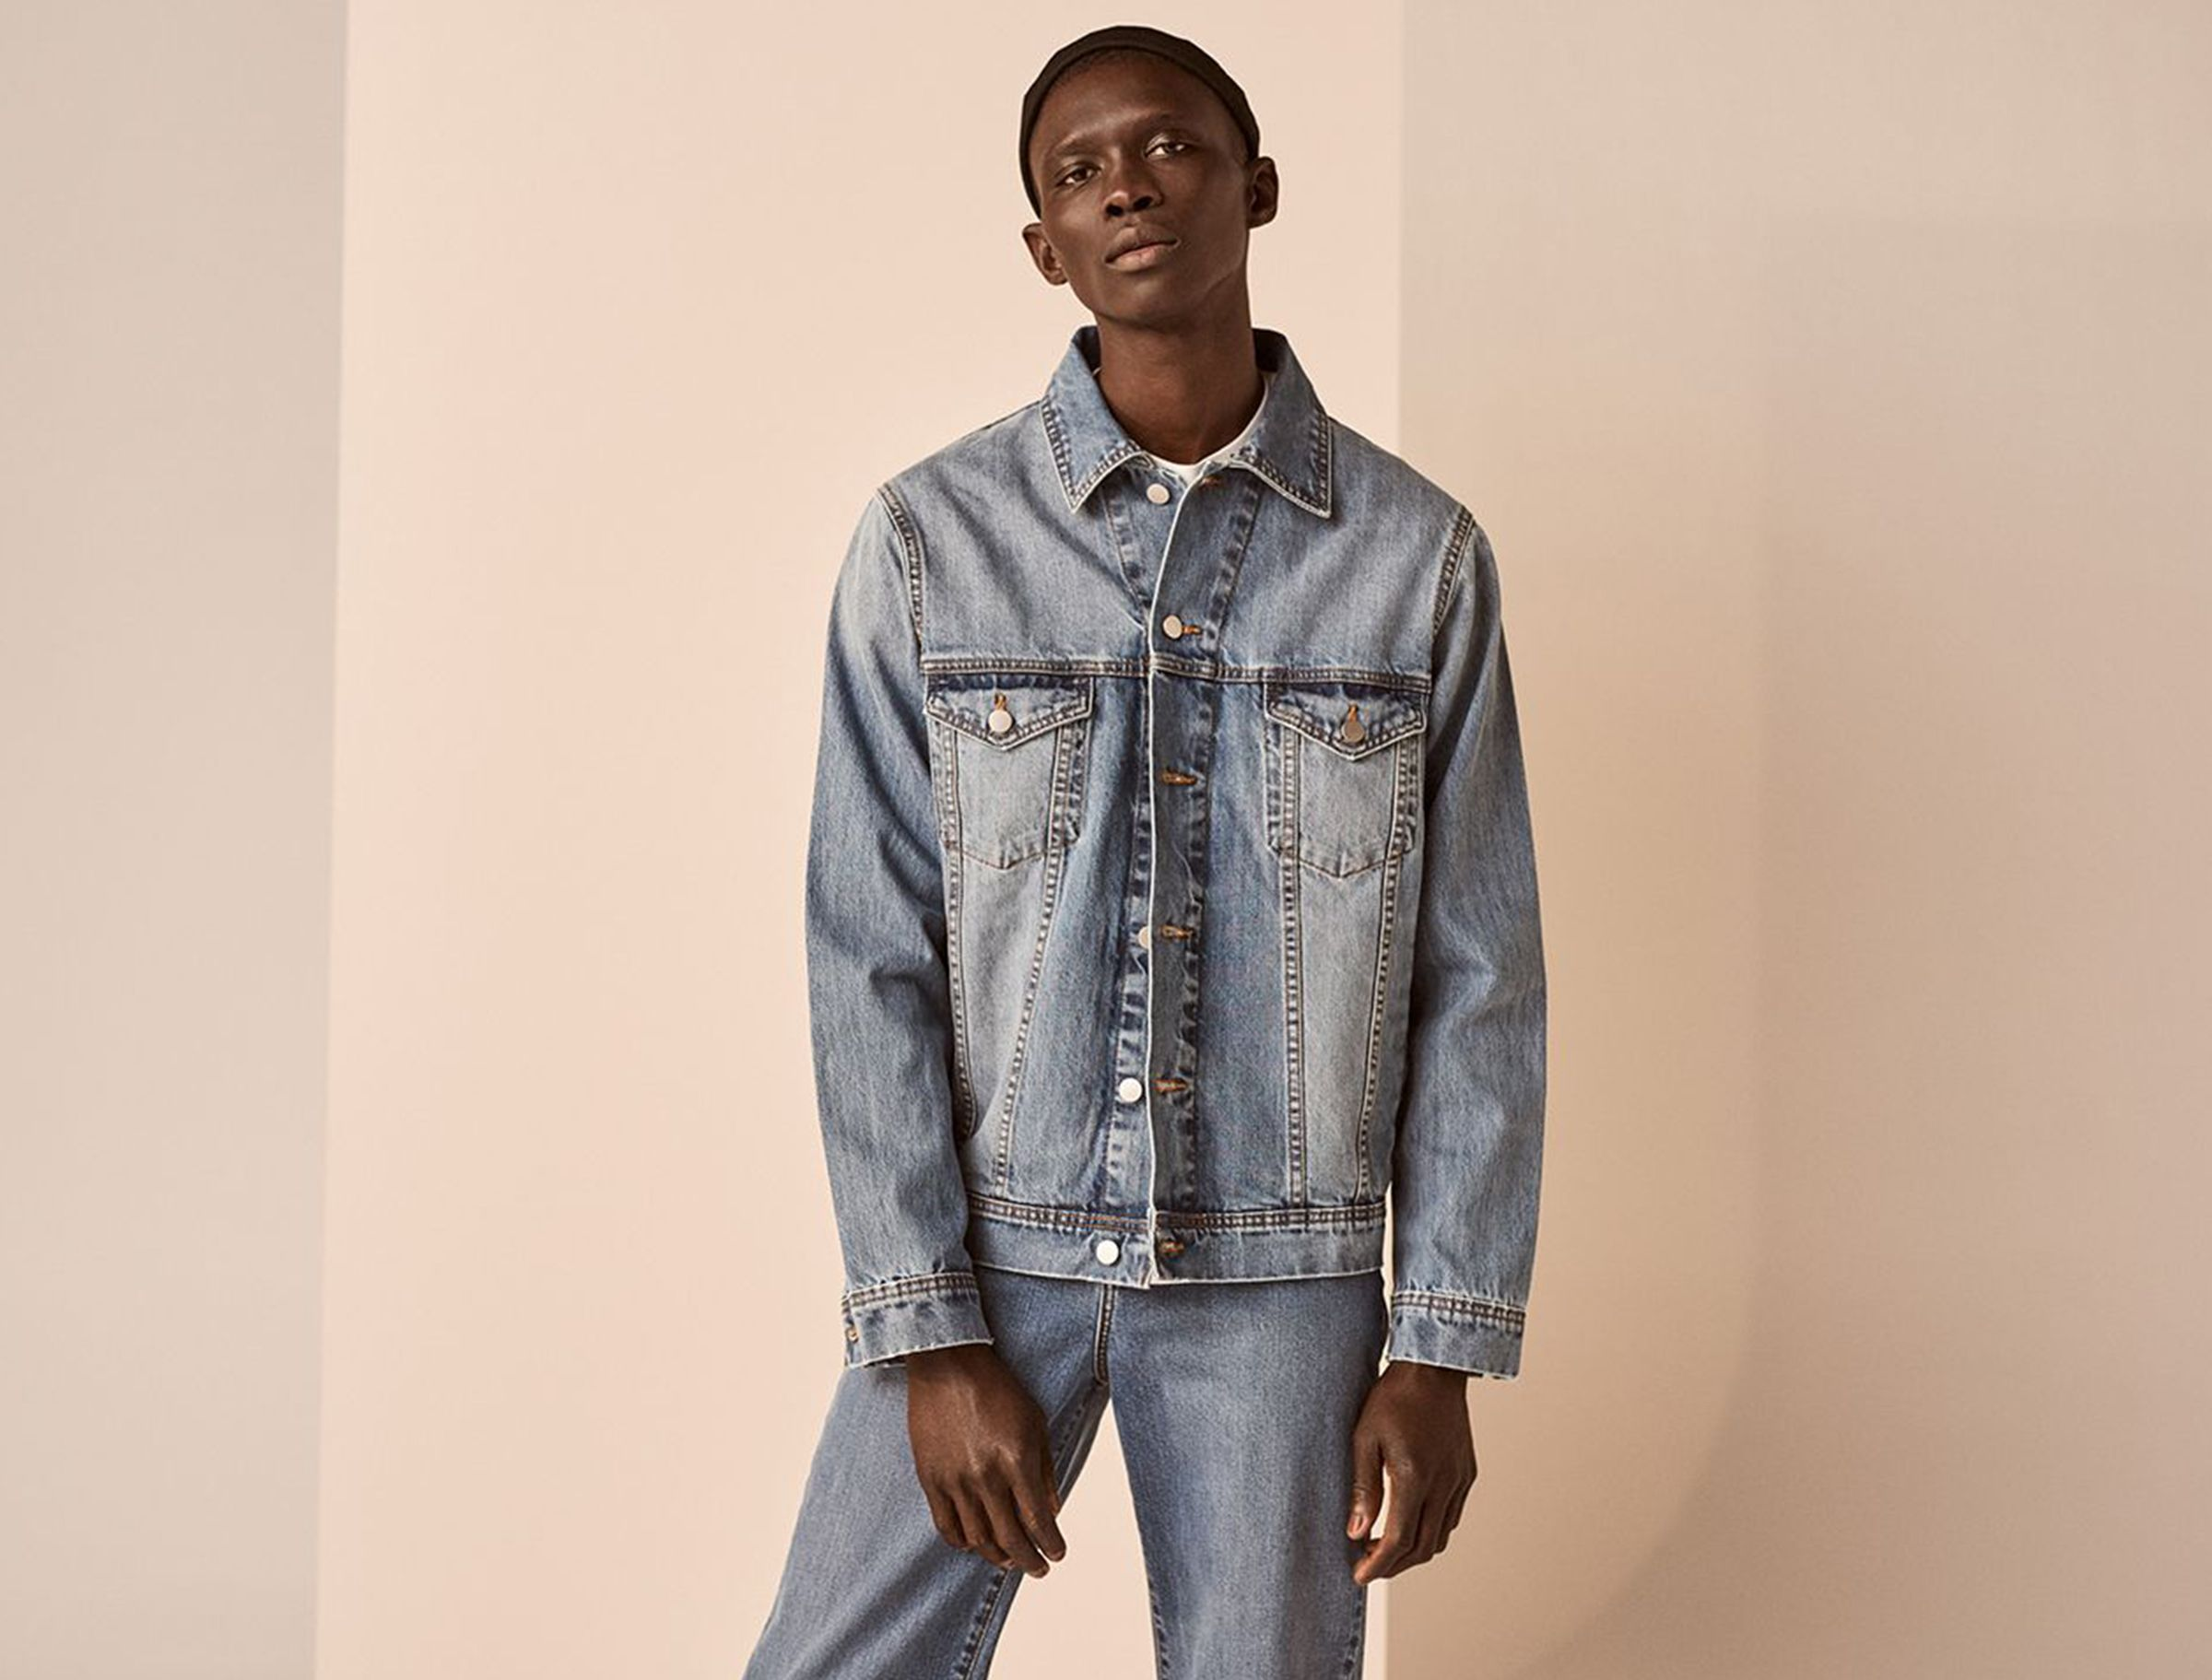 Five must-have pieces of menswear under £150